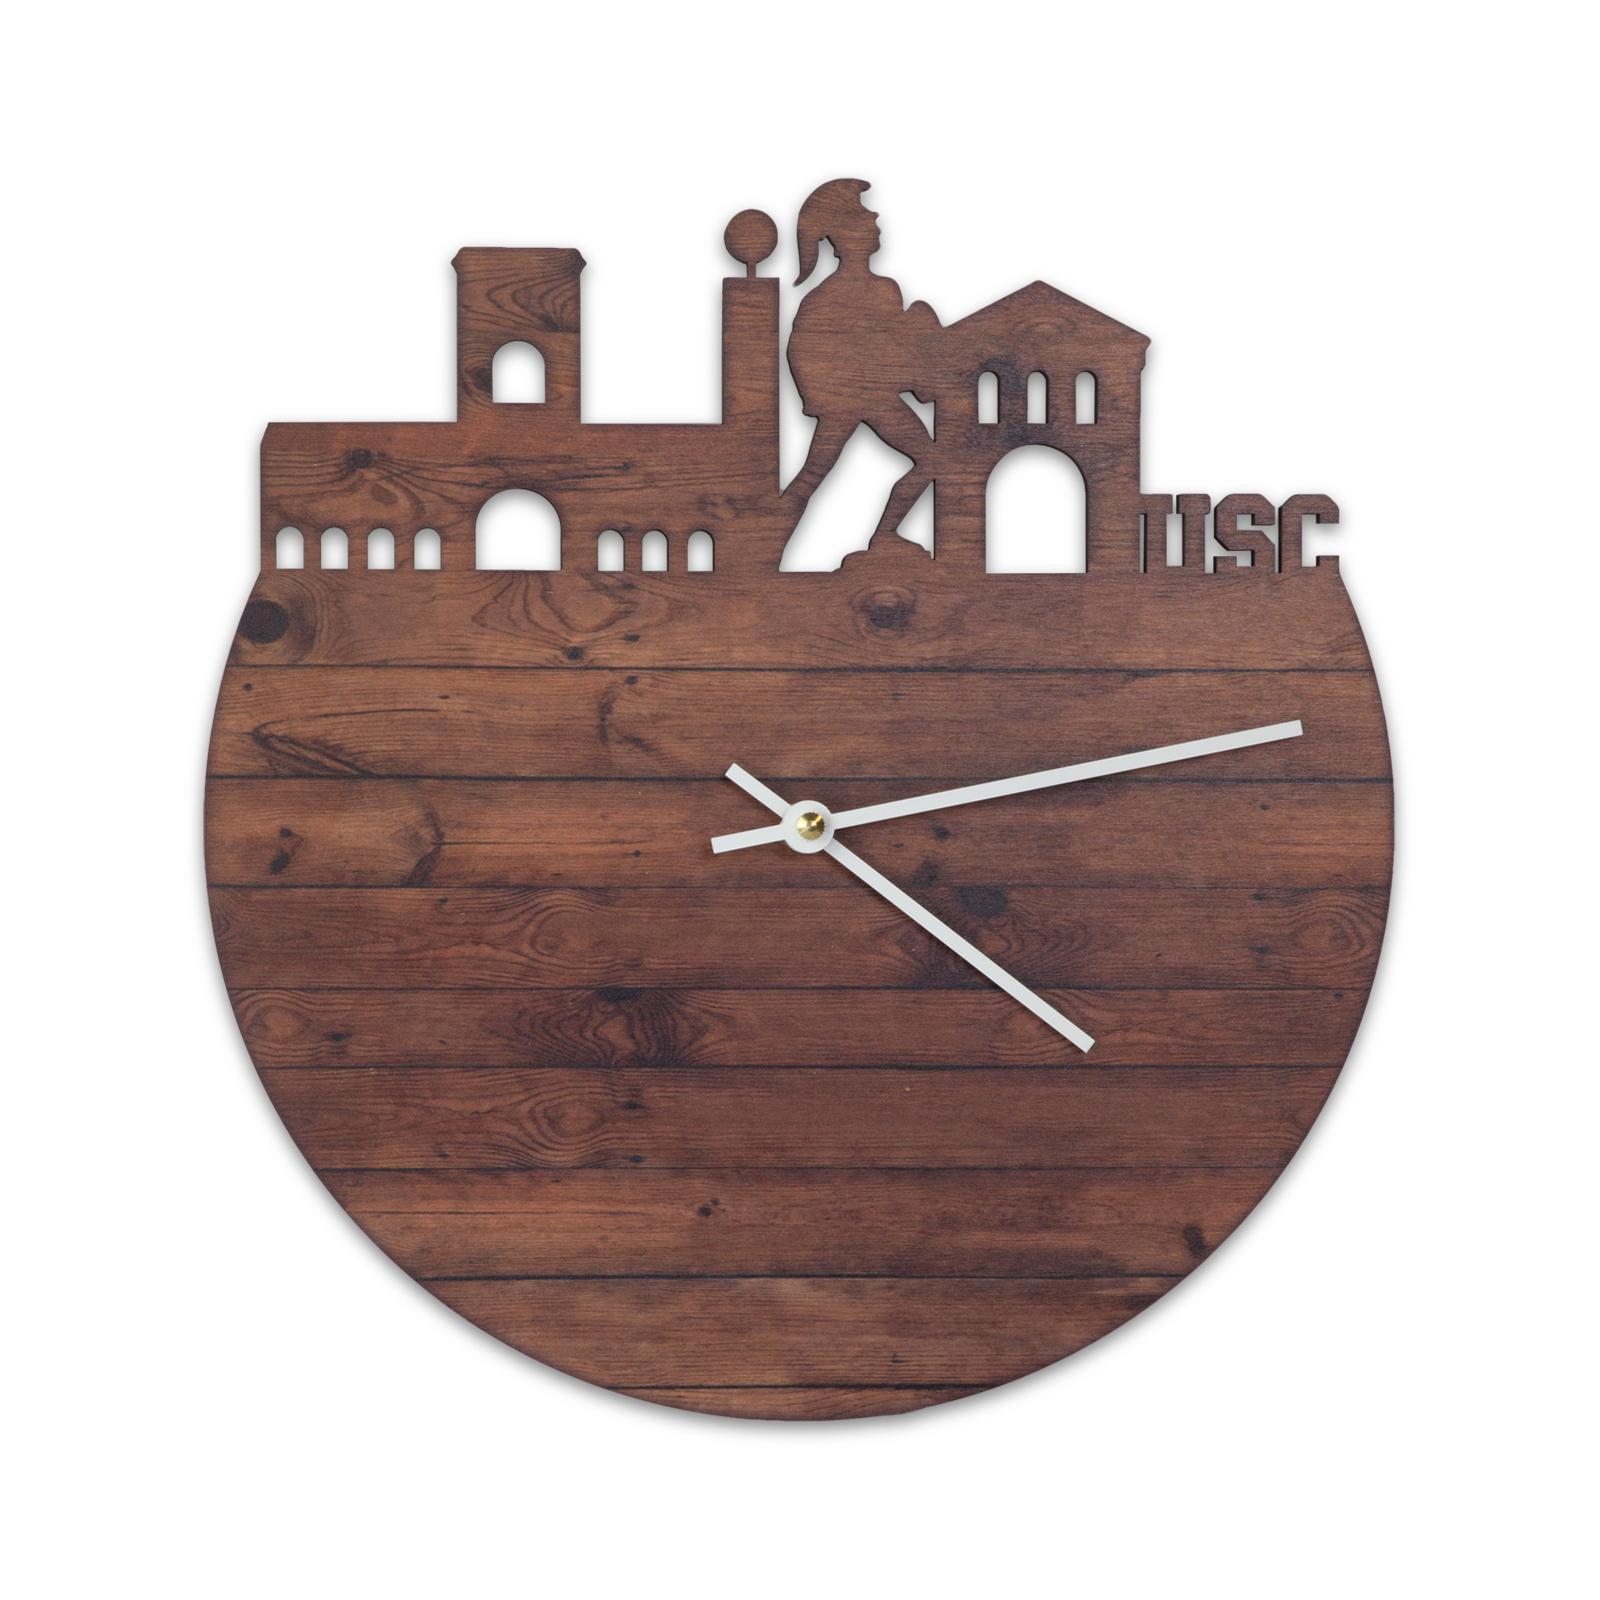 USC Wooden Laser Cut Campus Wall Clock